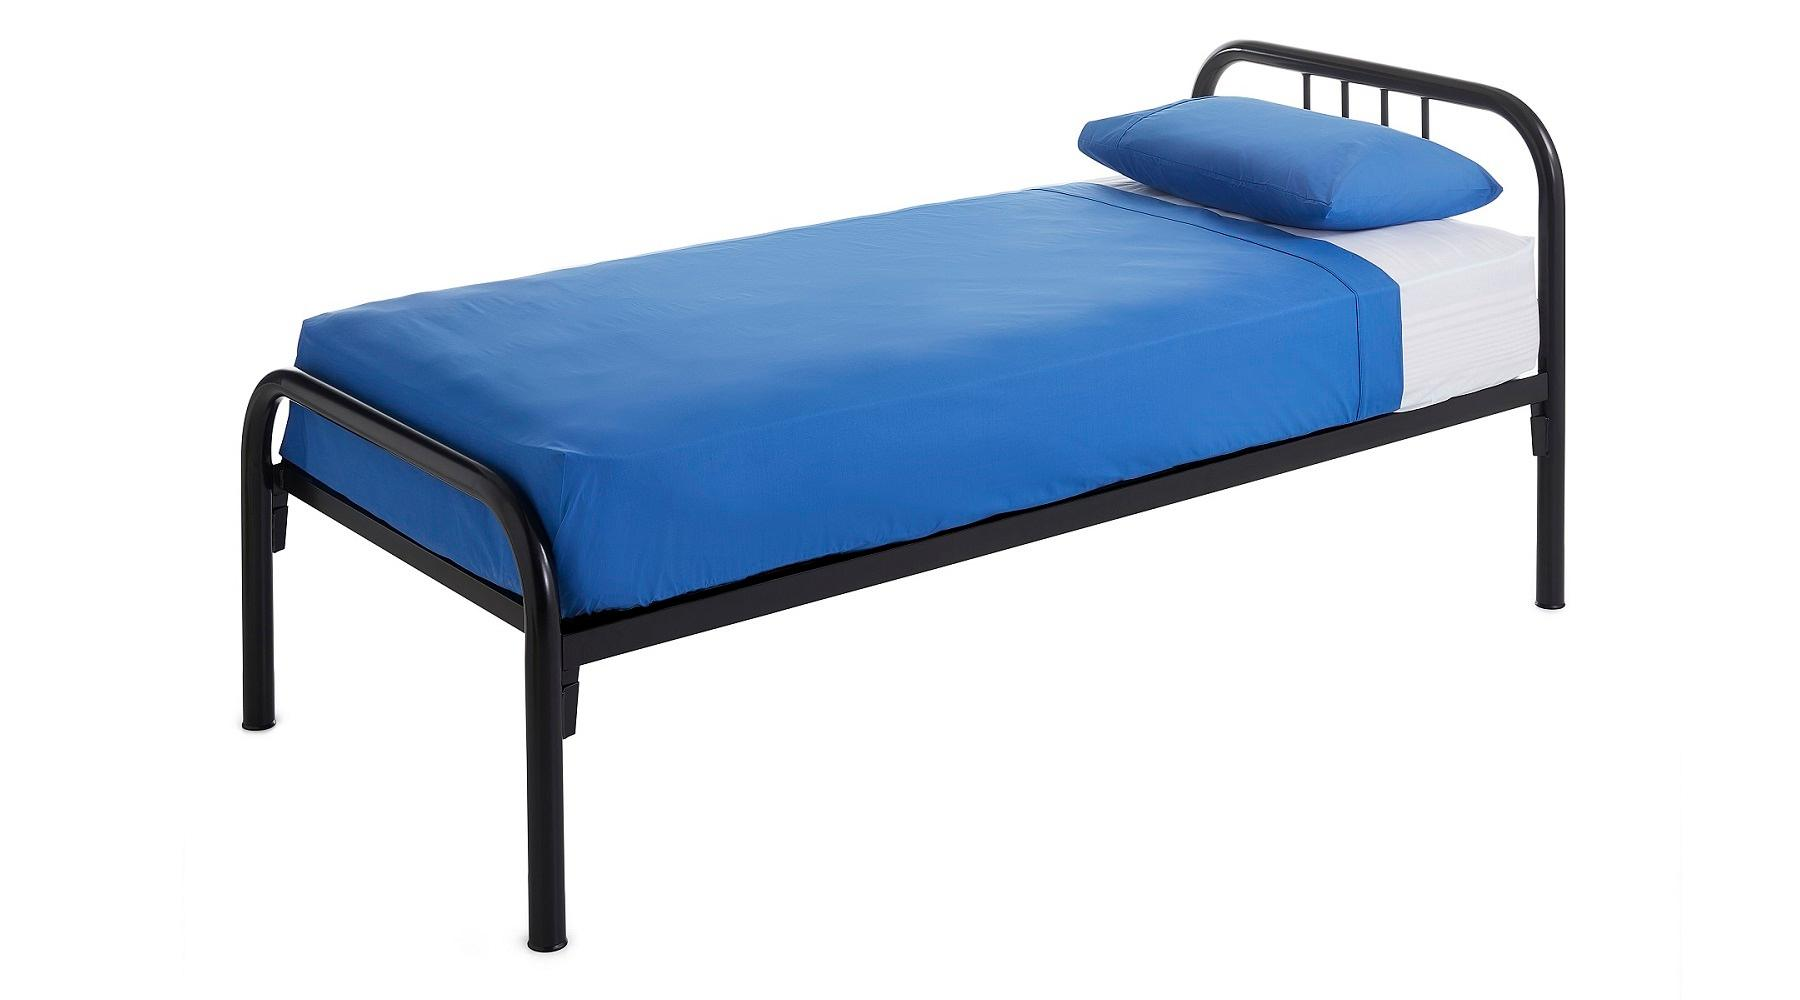 Balmoral commercial steel bed